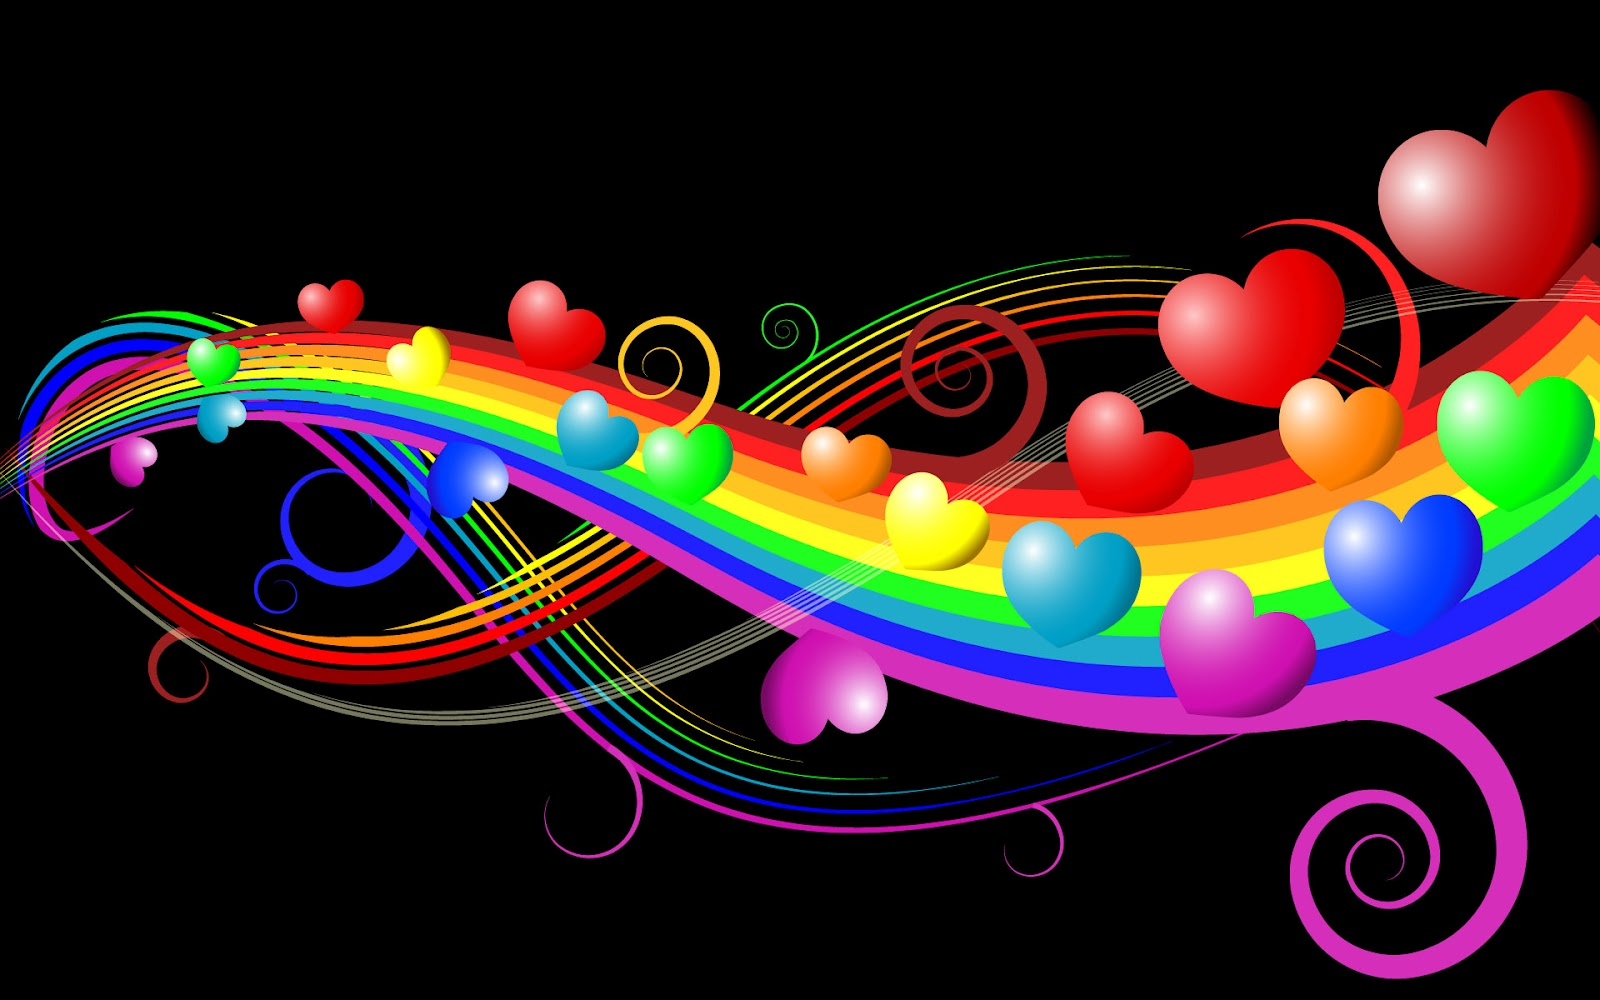 Info Wallpapers: i love music wallpapers